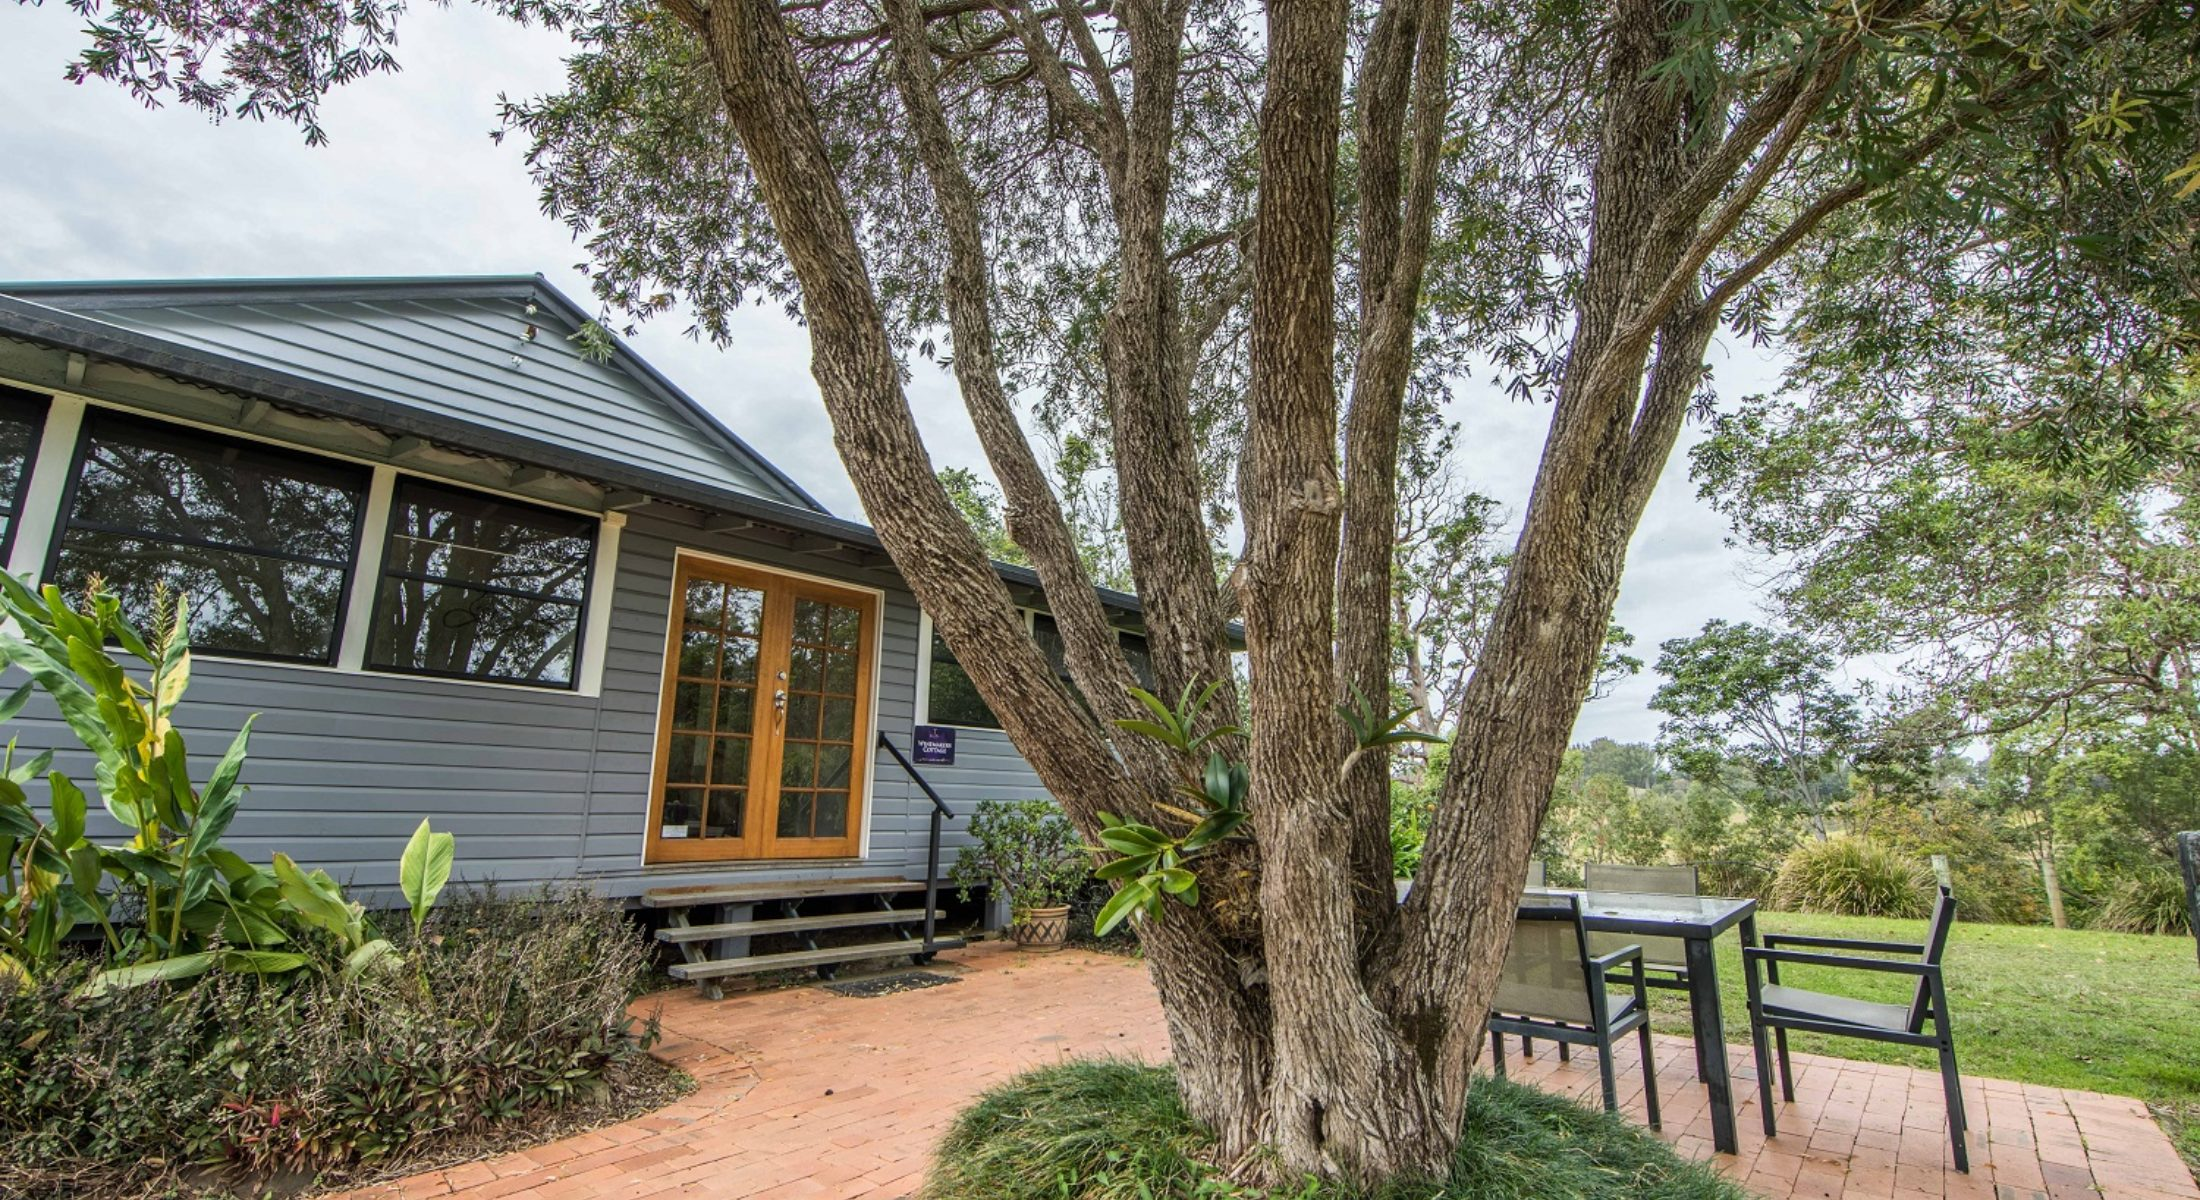 Ocean View Winery Accom Outdoor Patio Moreton Bay Region